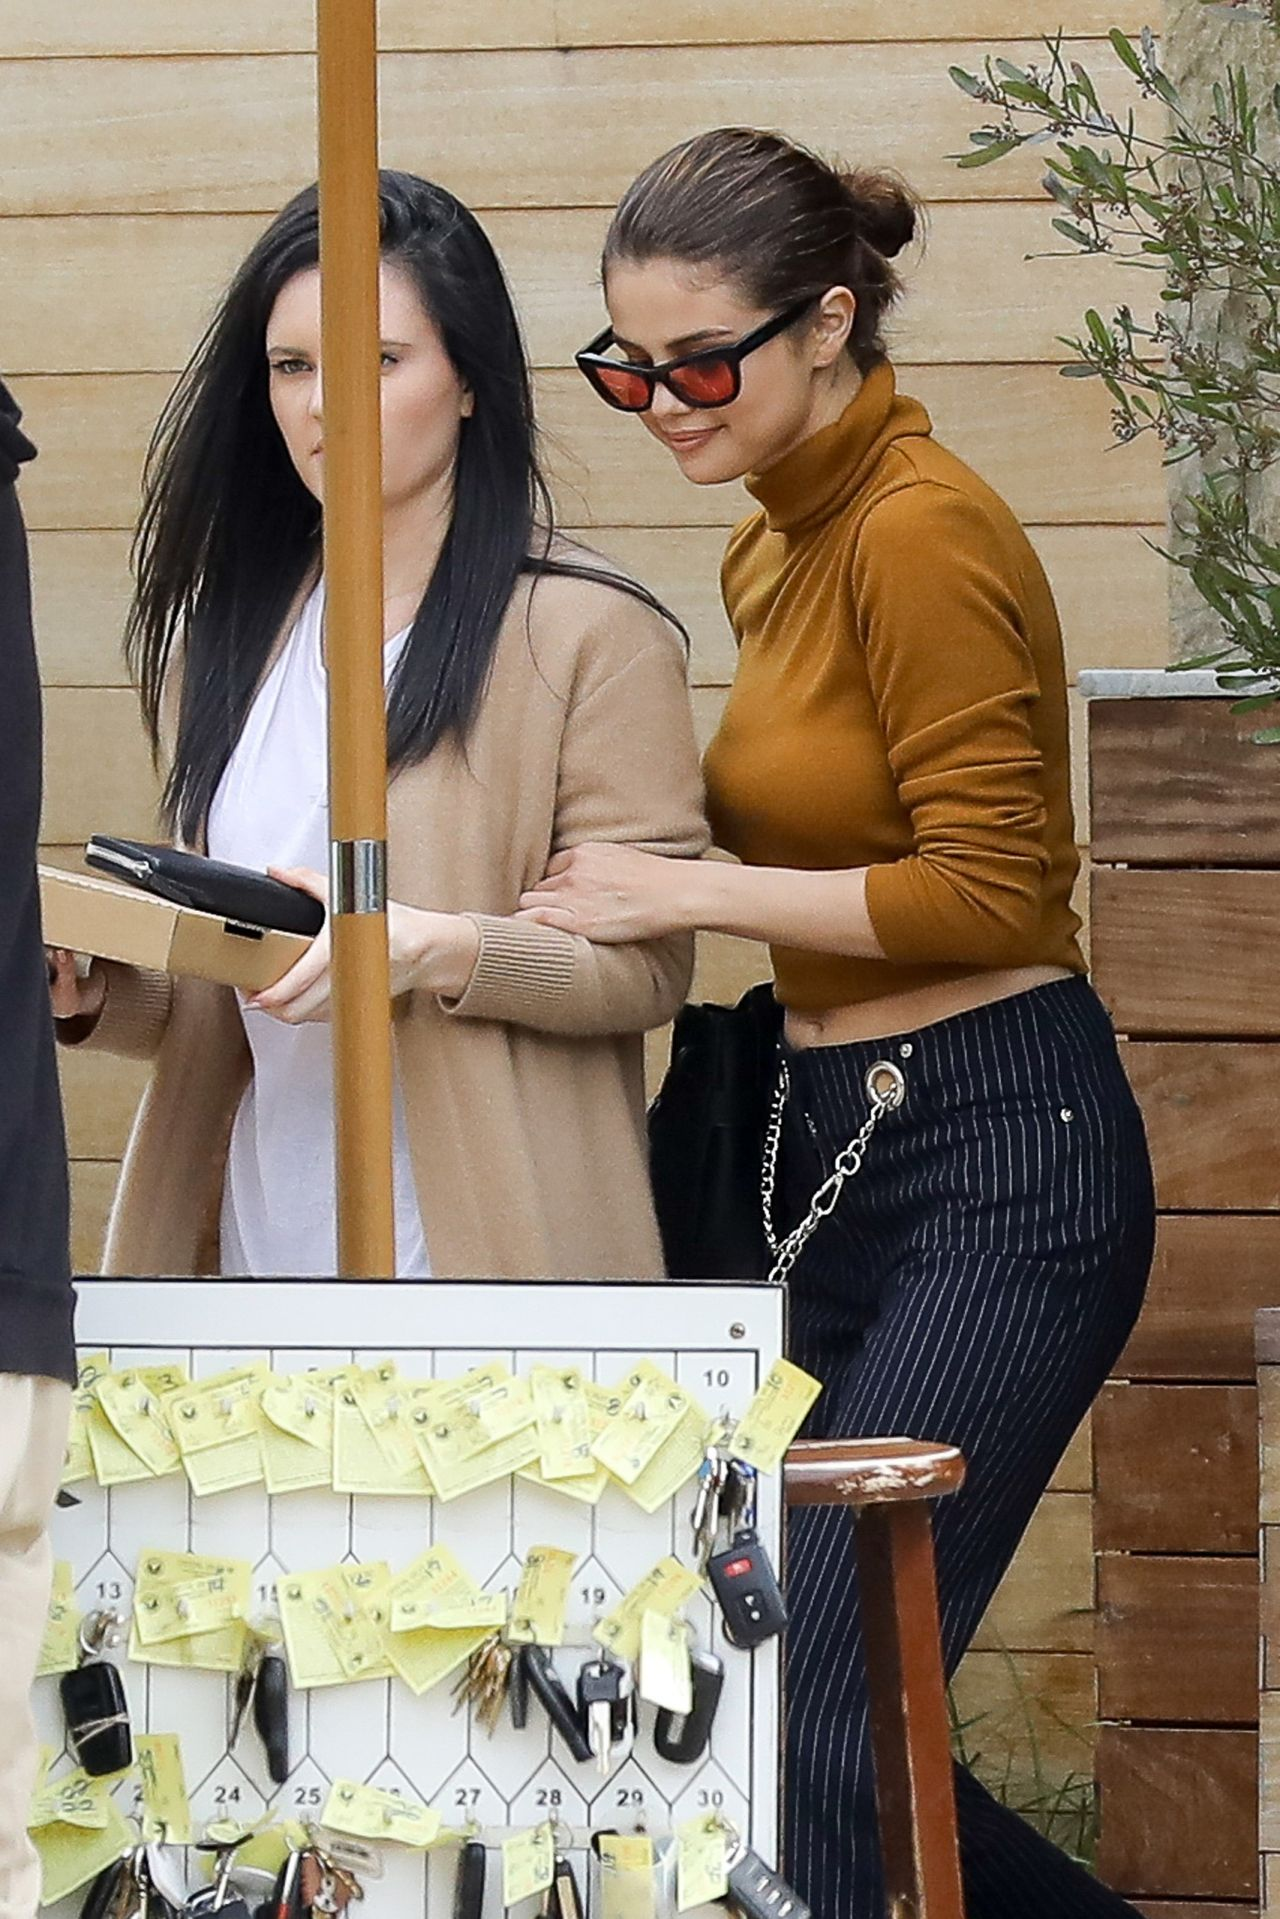 gomez street fashion - lunch with friends at soho house in malibu